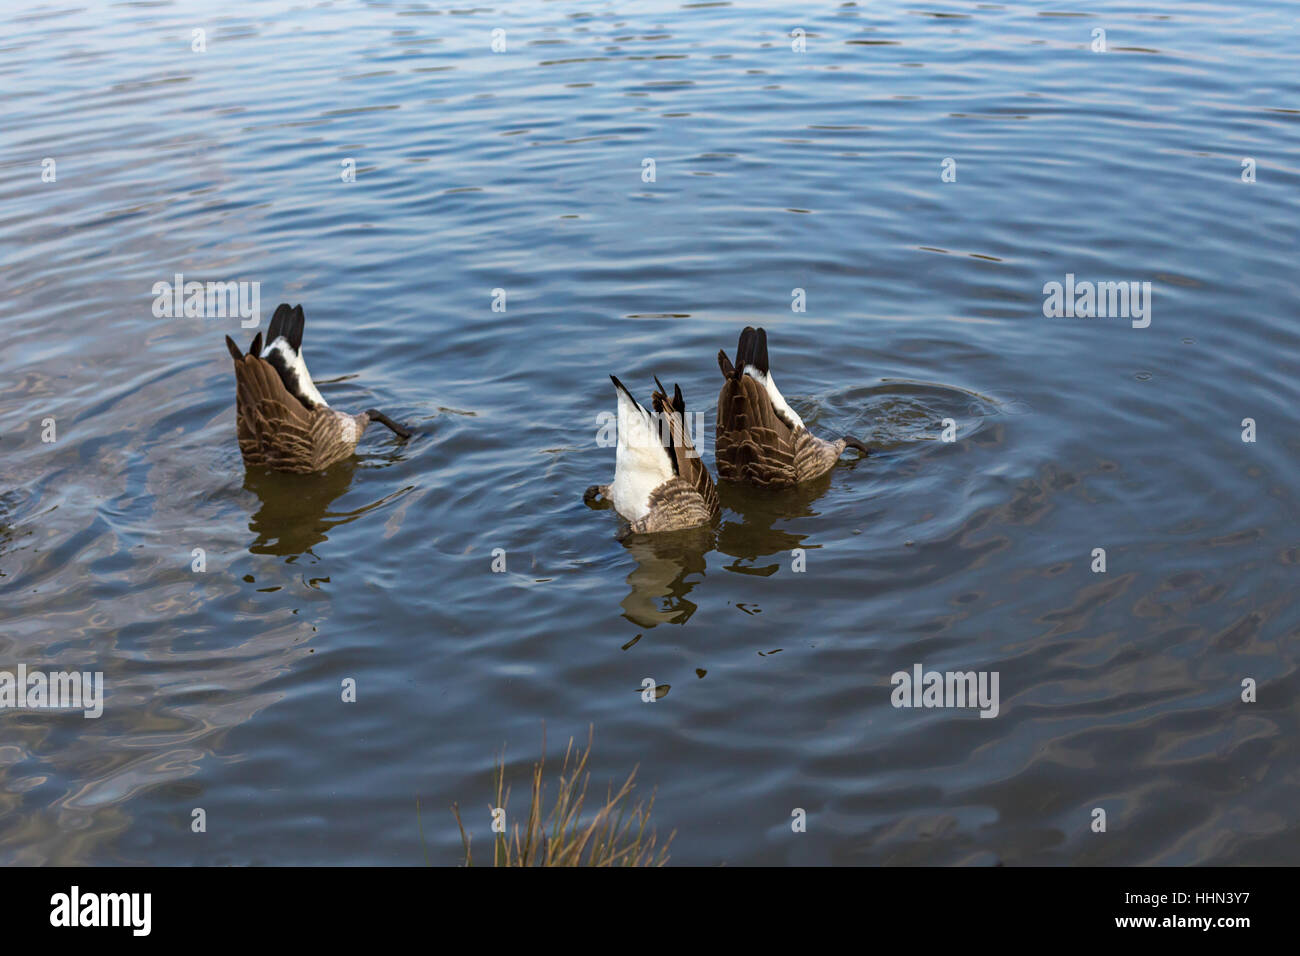 Three Canadian geese with just their bottoms showing in the lake. Stock Photo